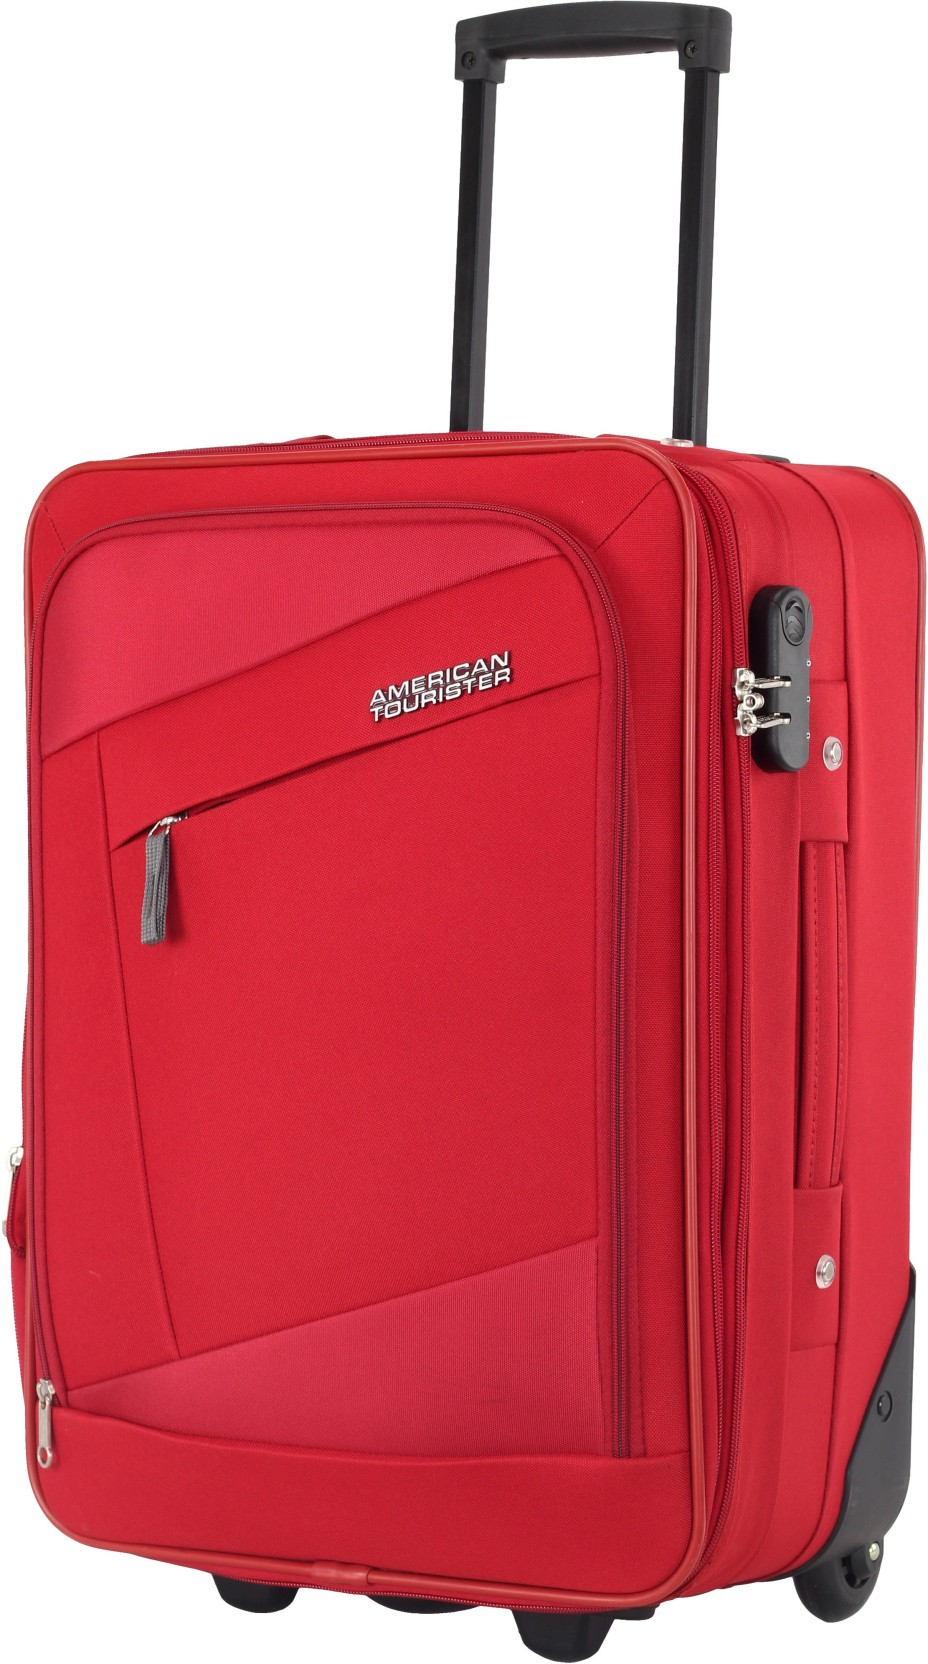 American Tourister Elegance Plus Expandable Cabin Luggage